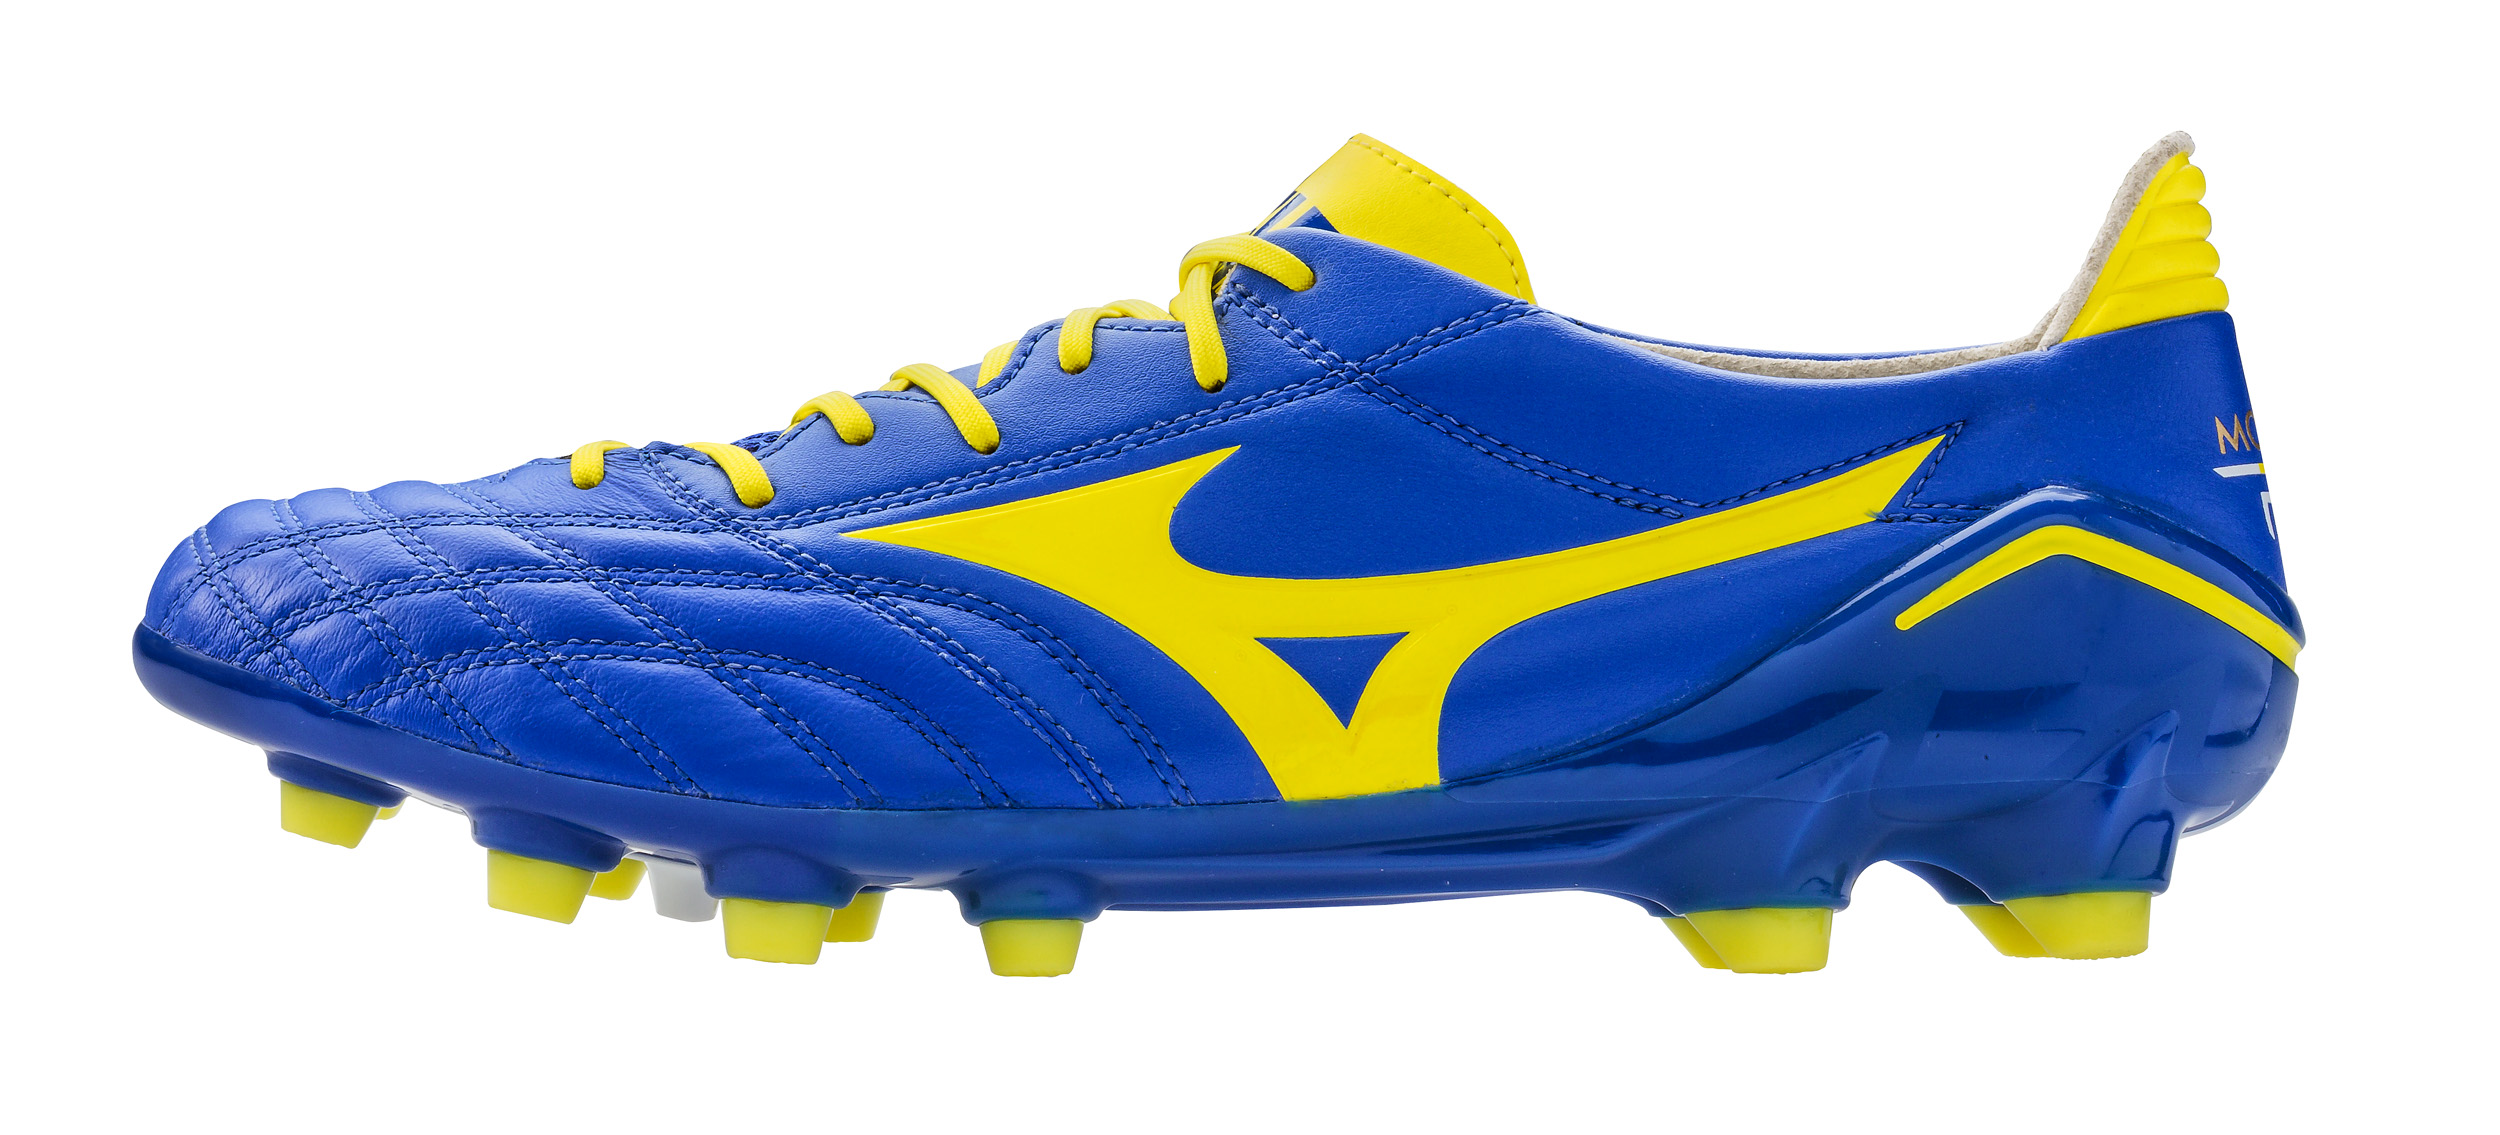 newest 5045d 2f0ff The Fantastic Mizuno Morelia Neo Gets a Full Review - The Instep